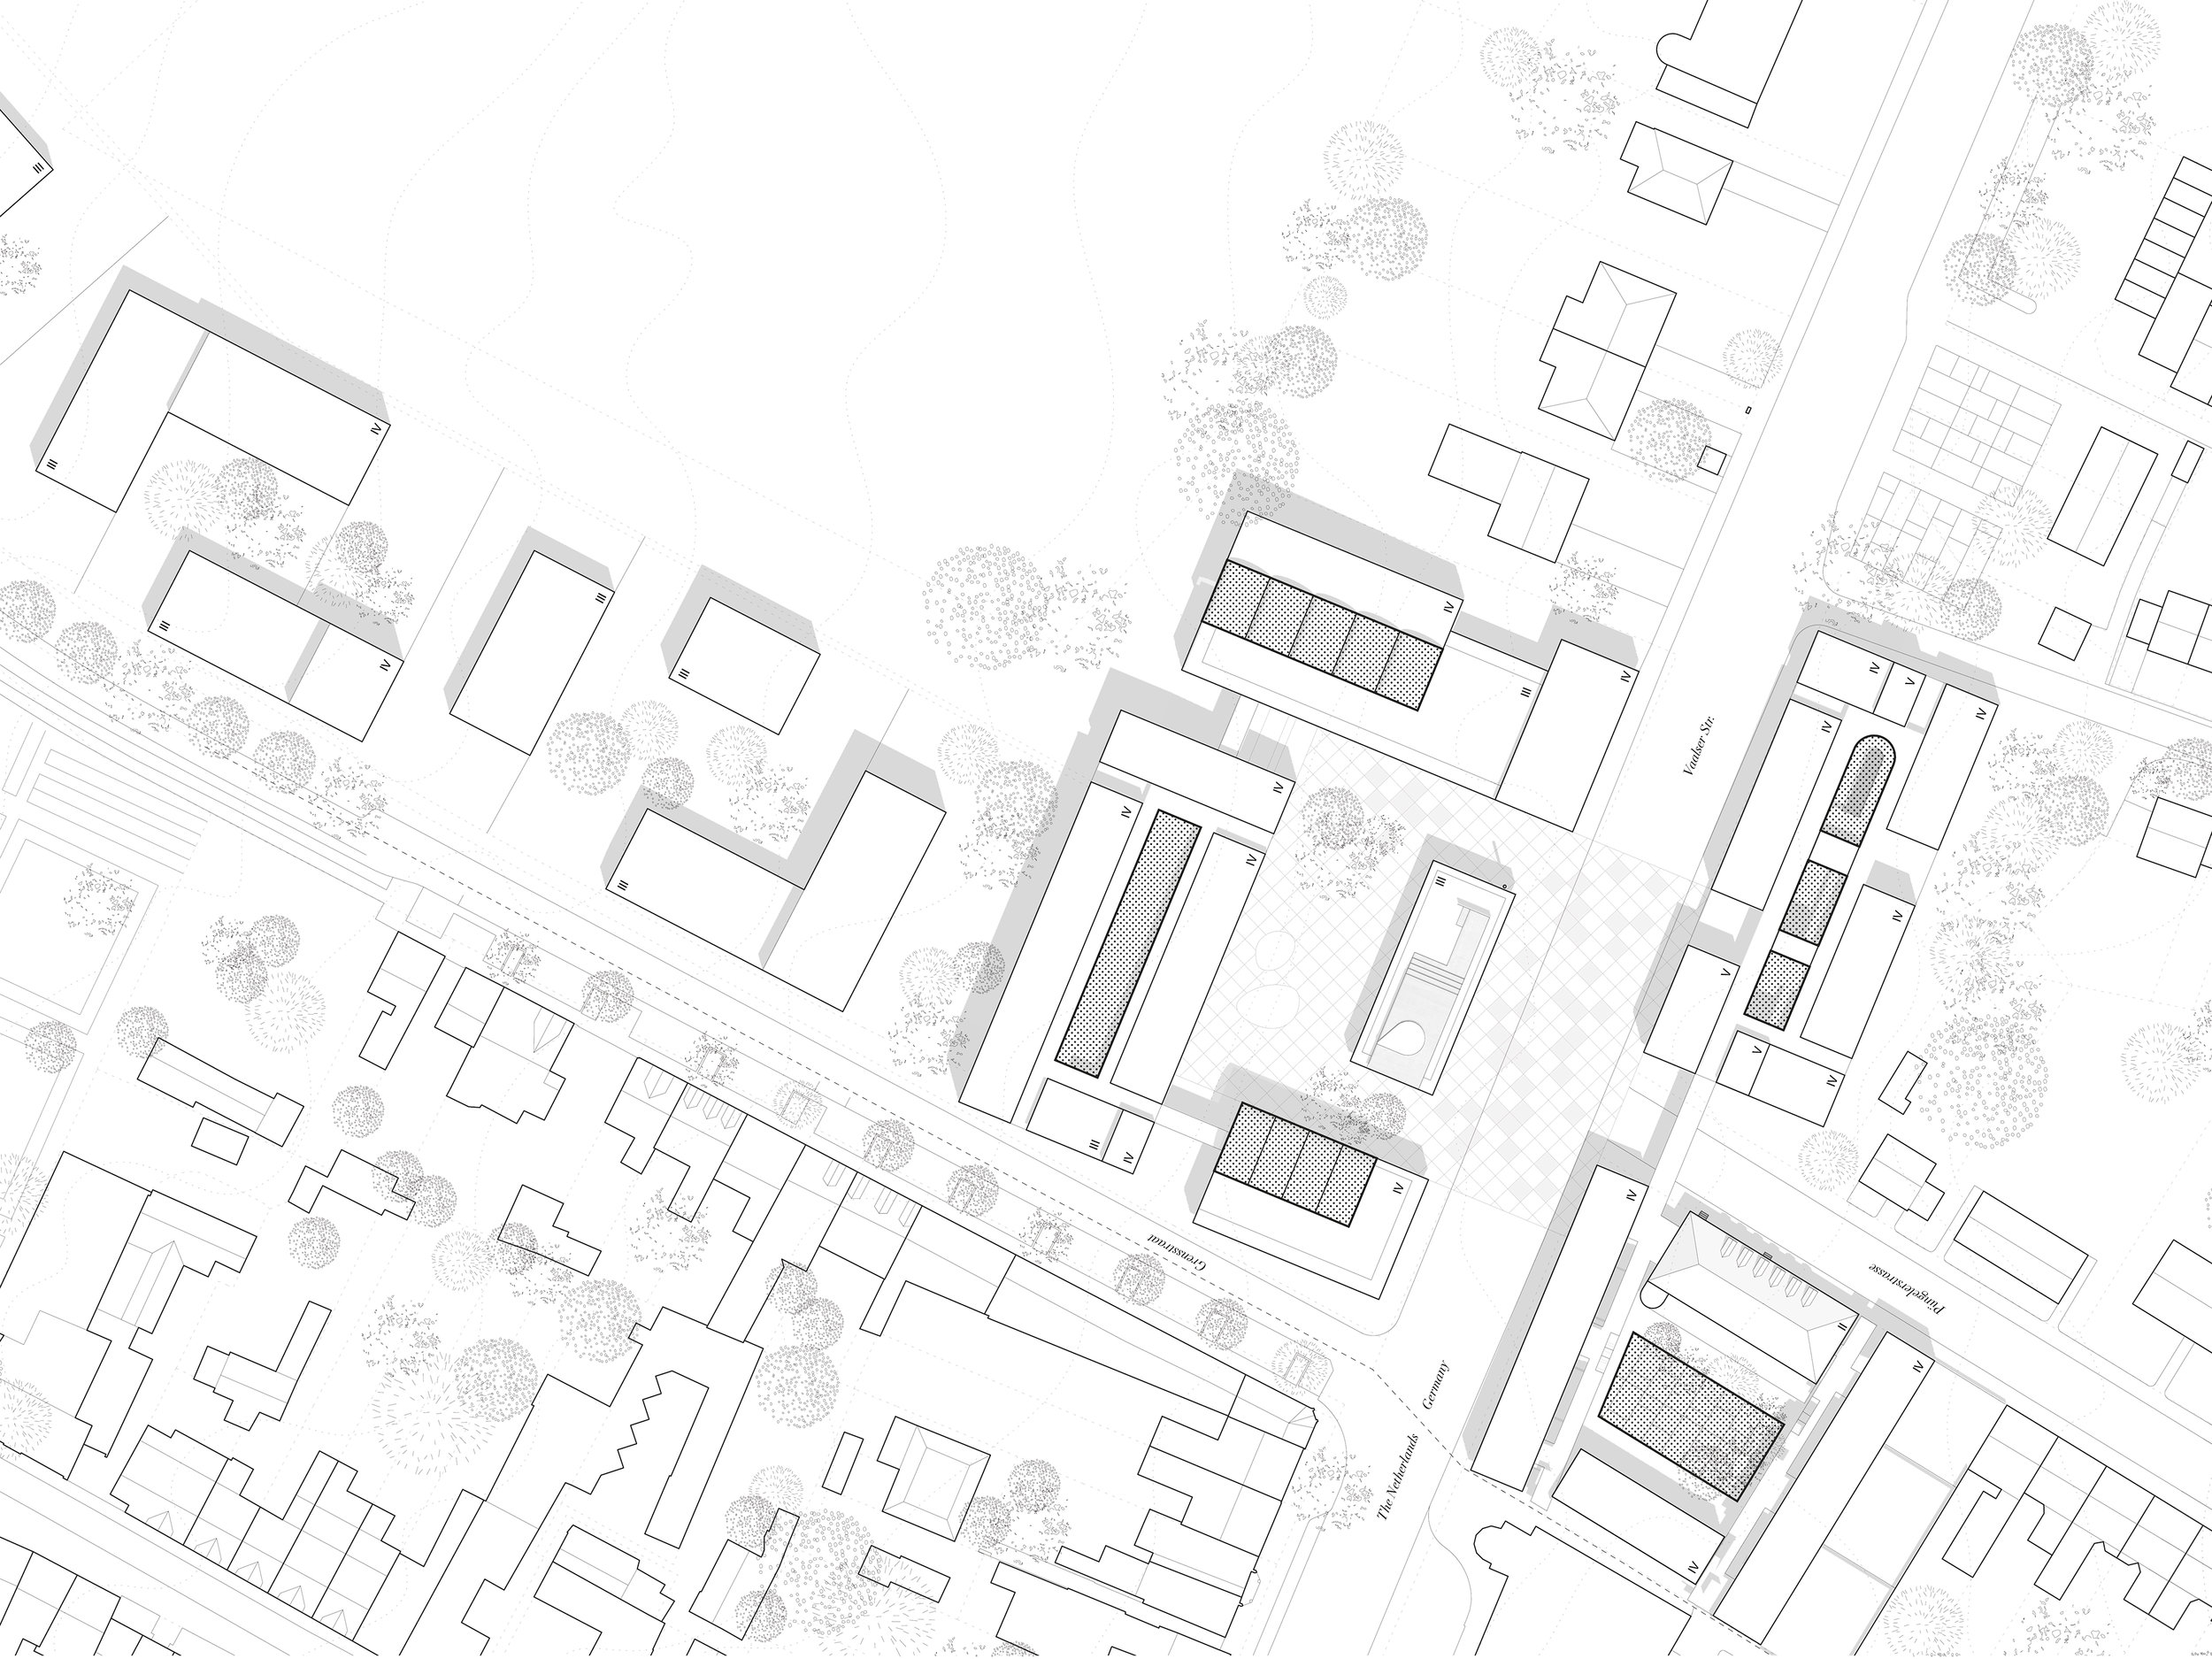 Collective Housing. Projective Habitat Competition. Site plan architecture